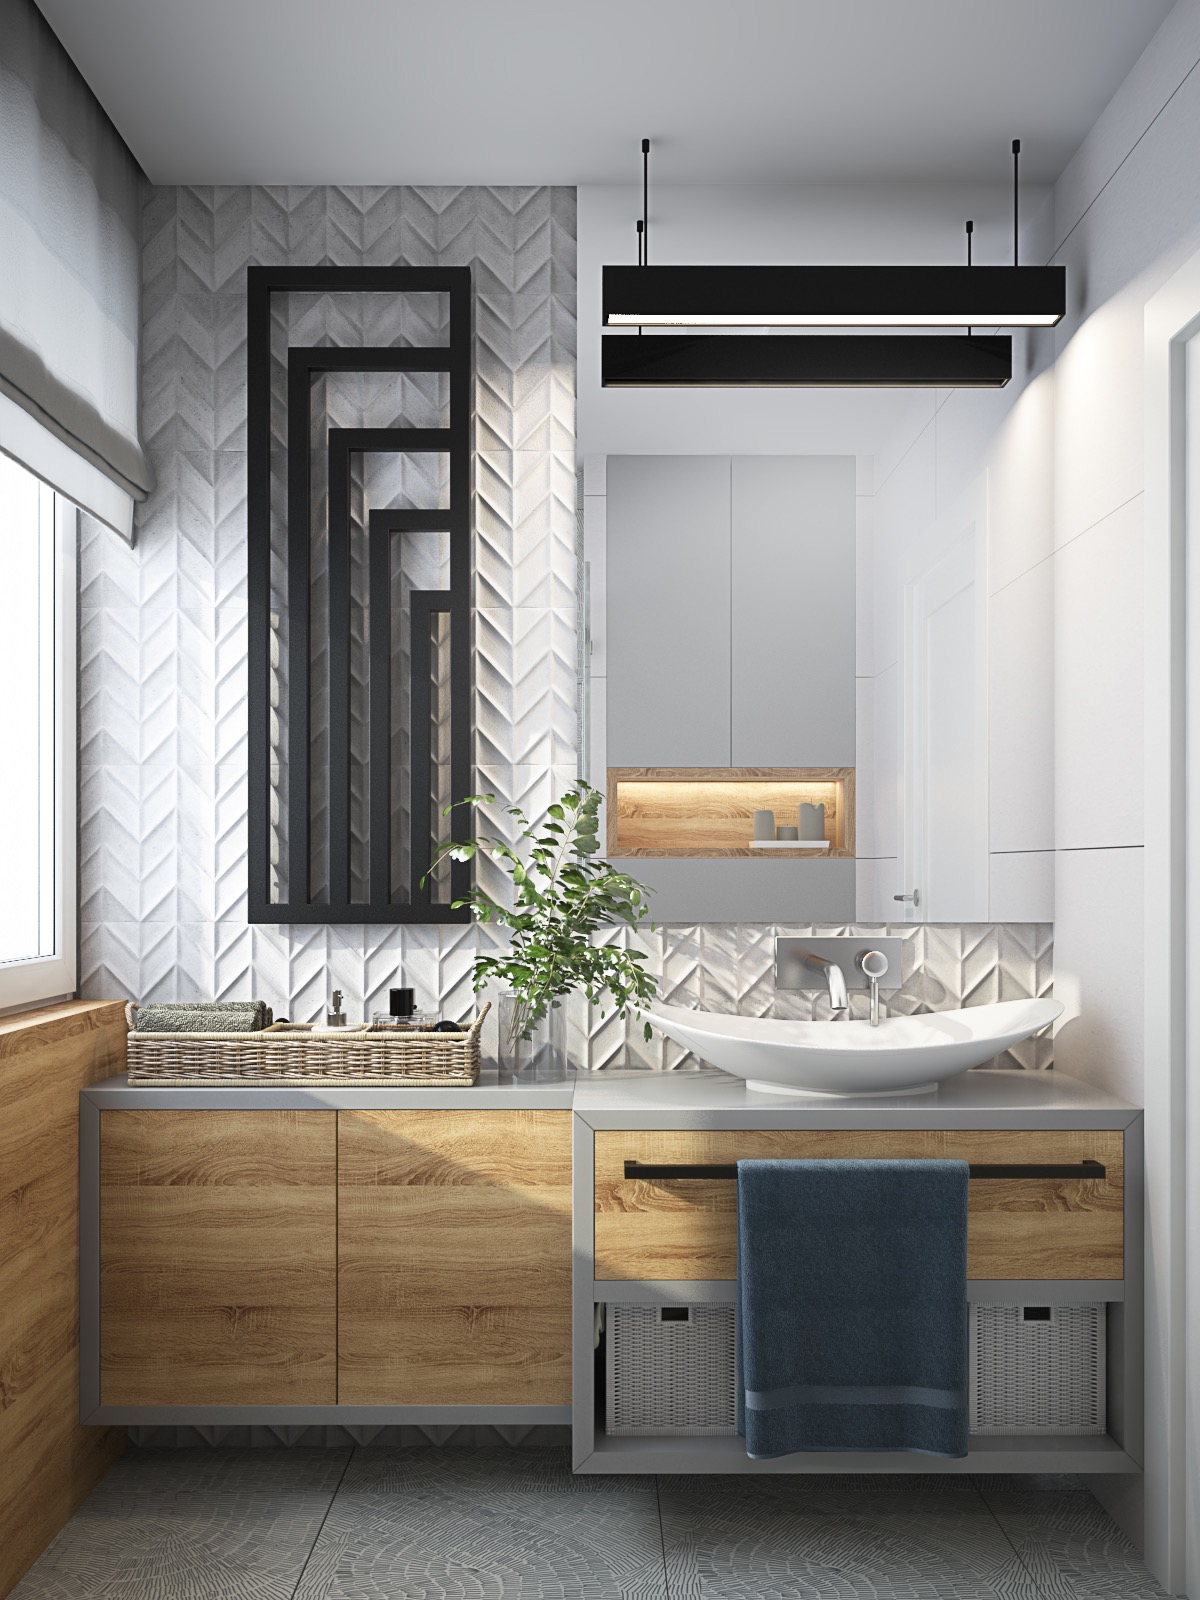 40 Modern Bathroom Vanities That Overflow With Style images 11